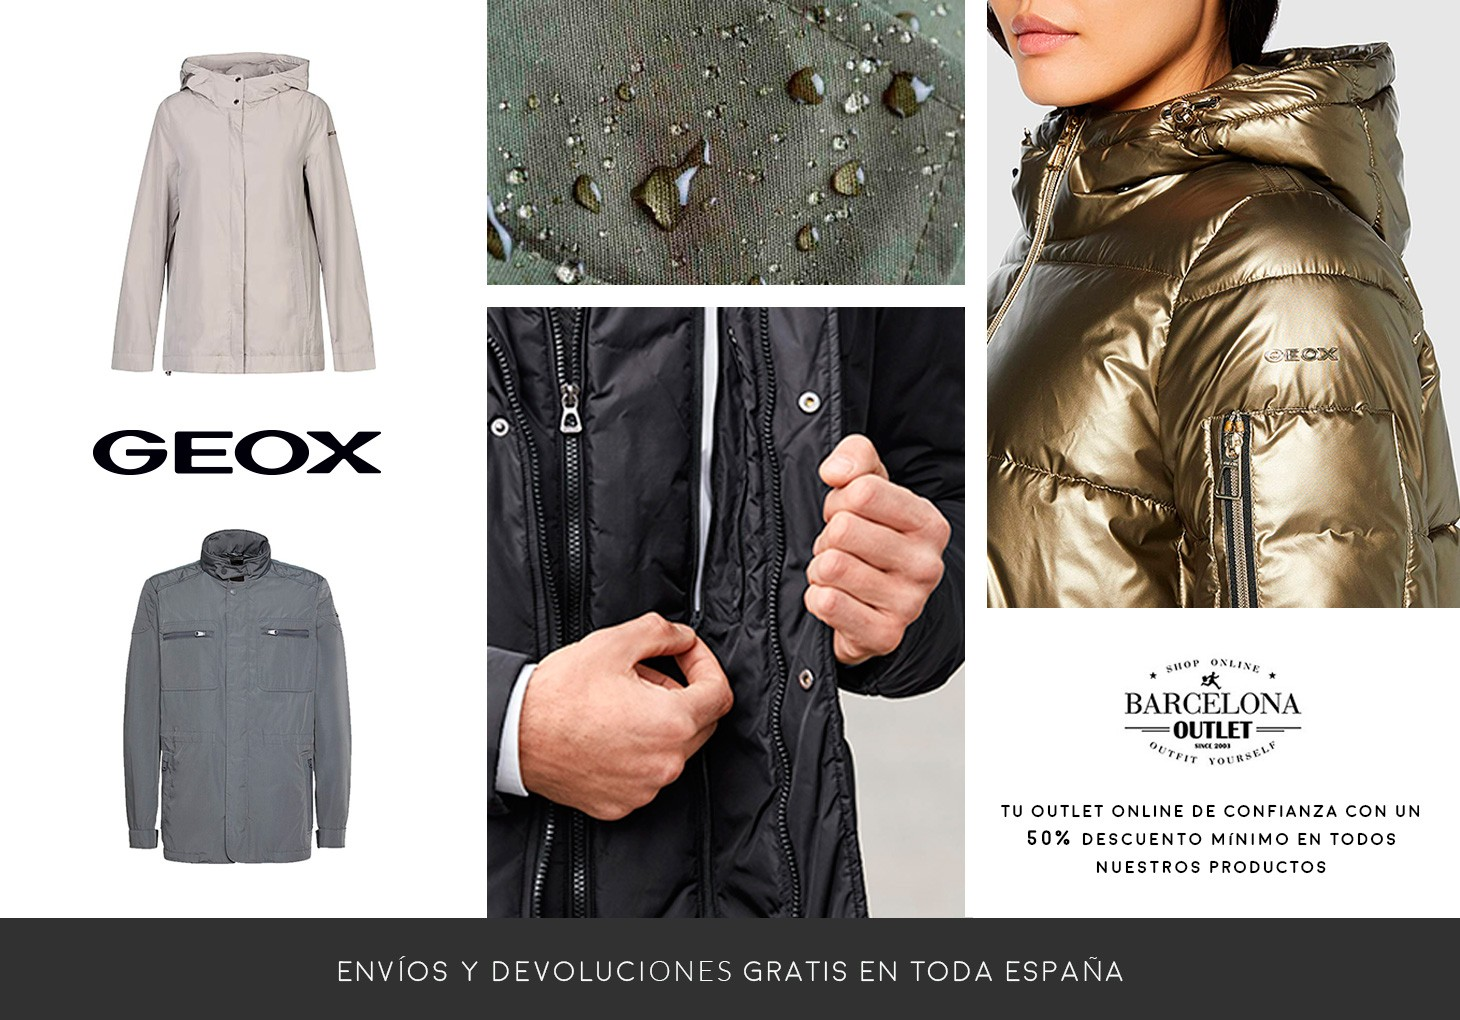 Barcelona Outlet - Outlet Geox